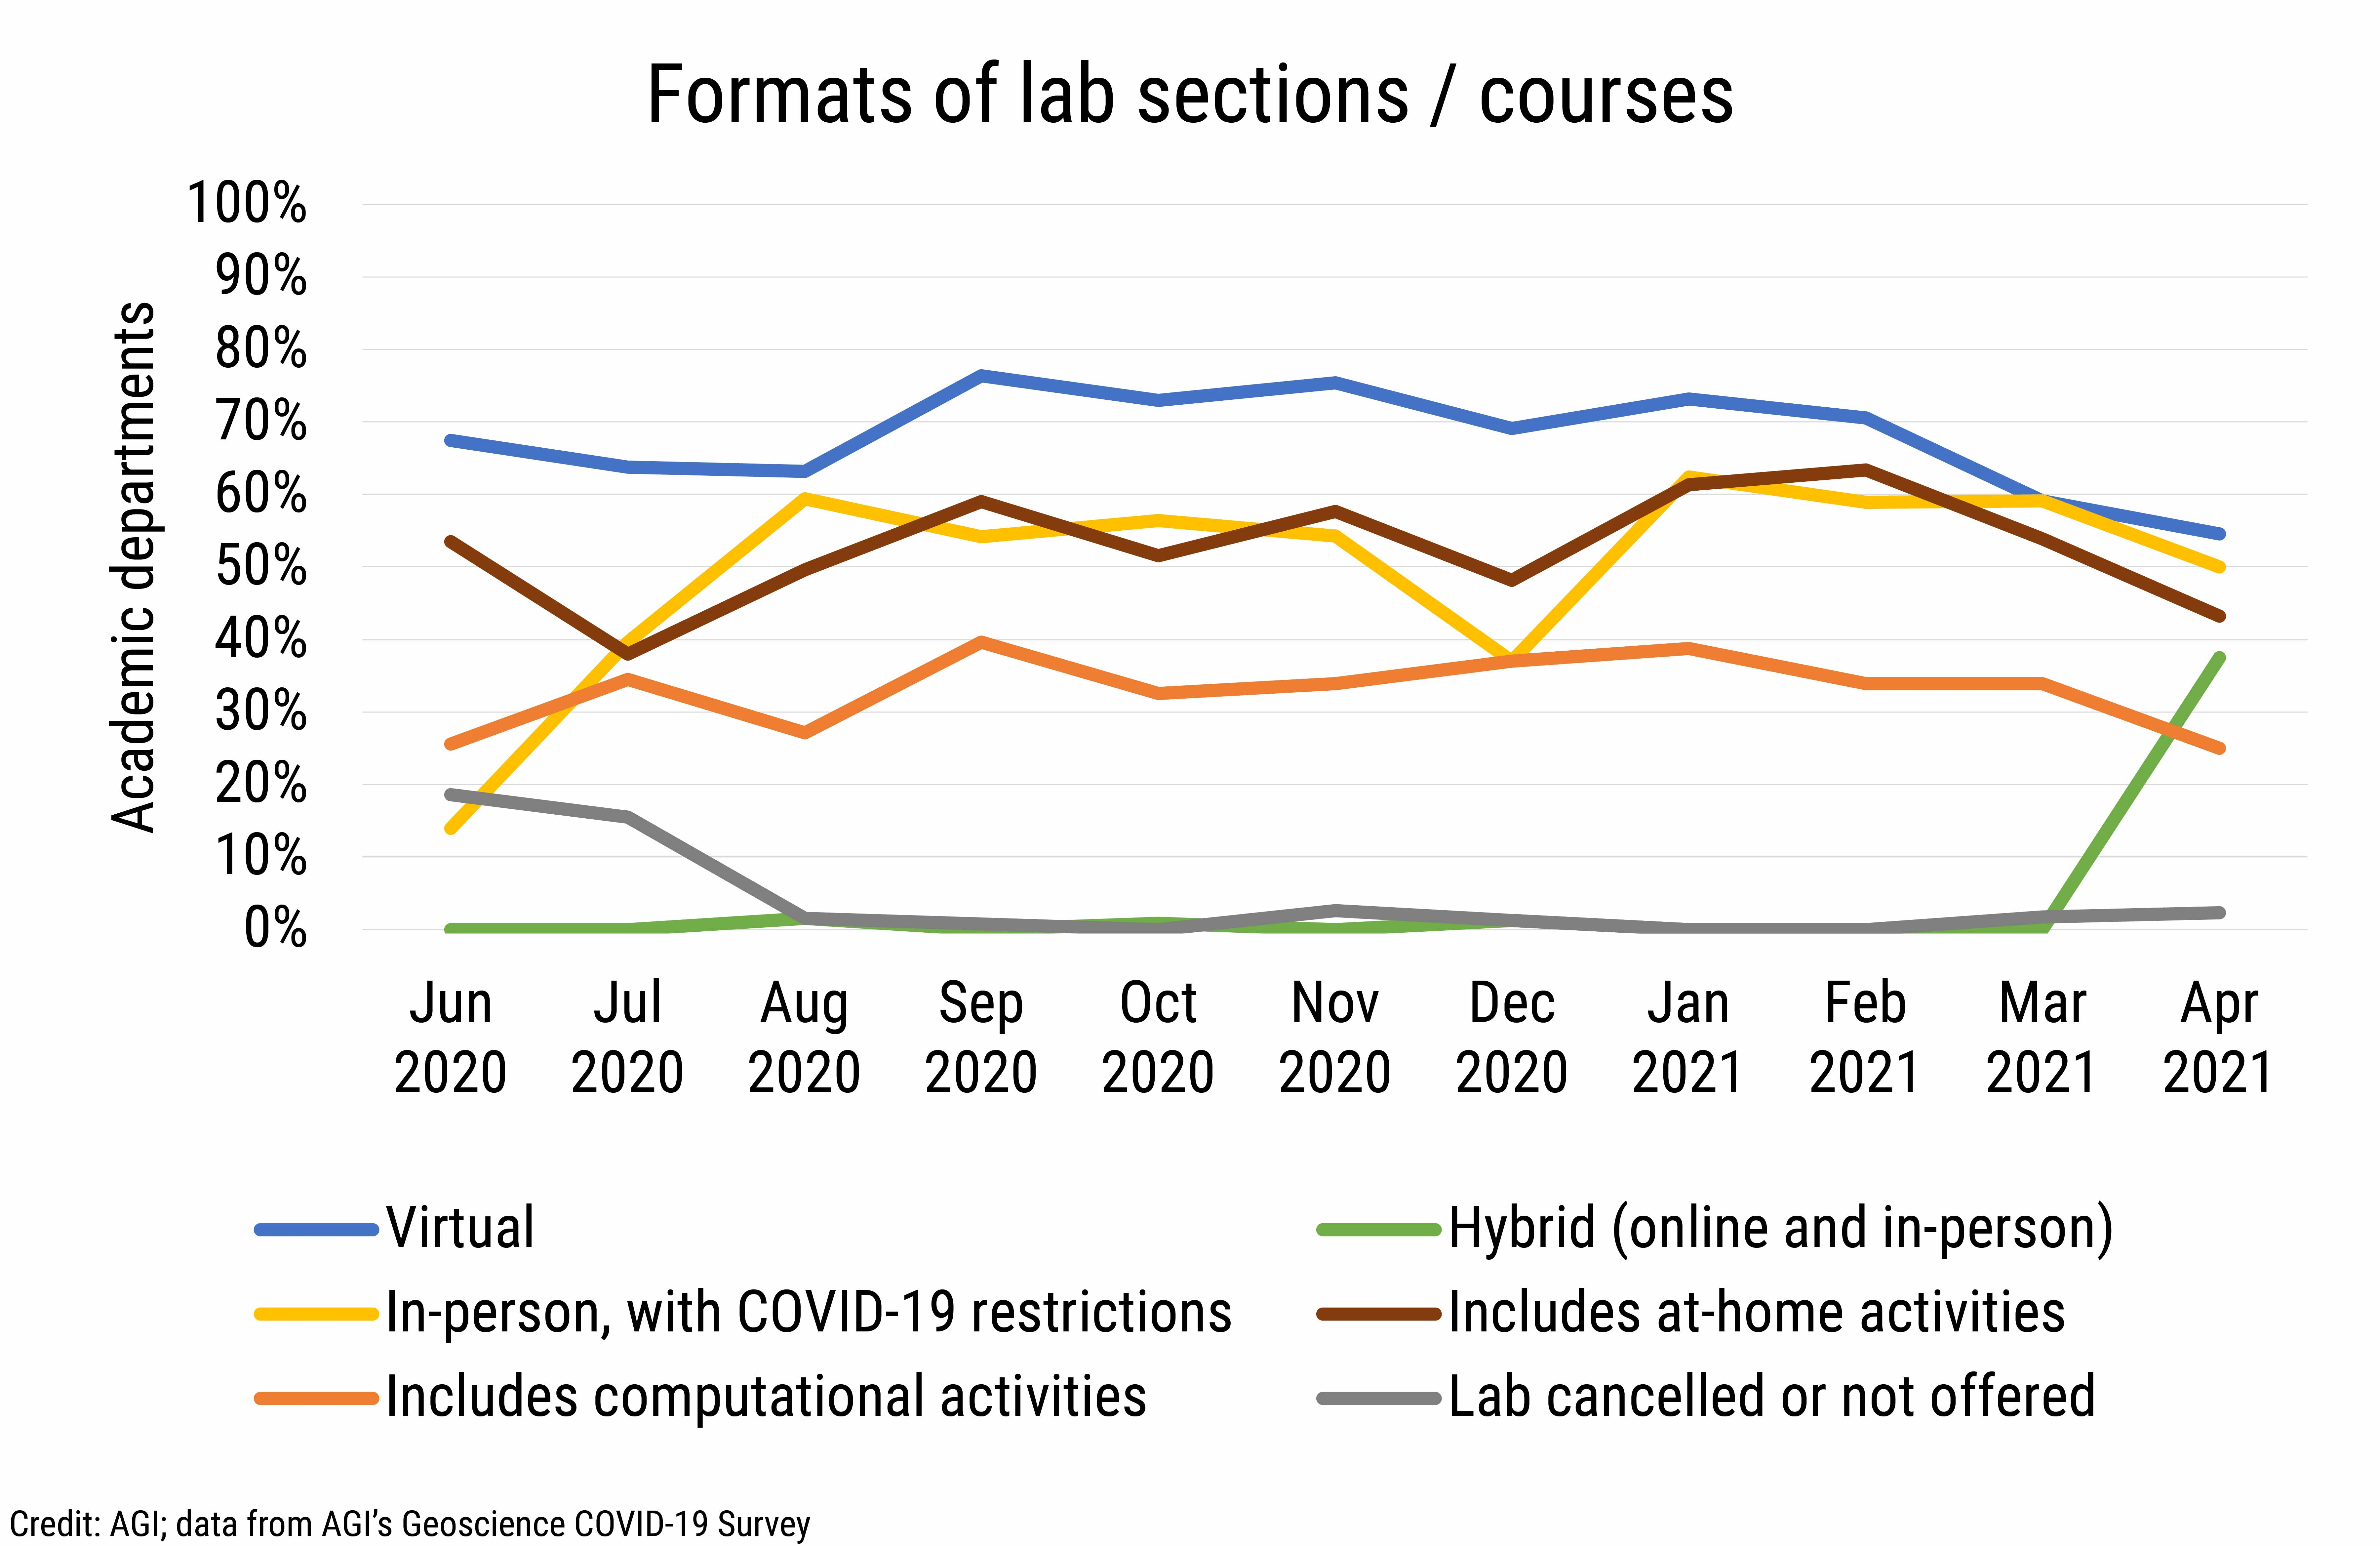 DB_2021-016 chart 02: Formats of lab sections / courses (Credit: AGI; data from AGI's Geoscience COVID-19 Survey)